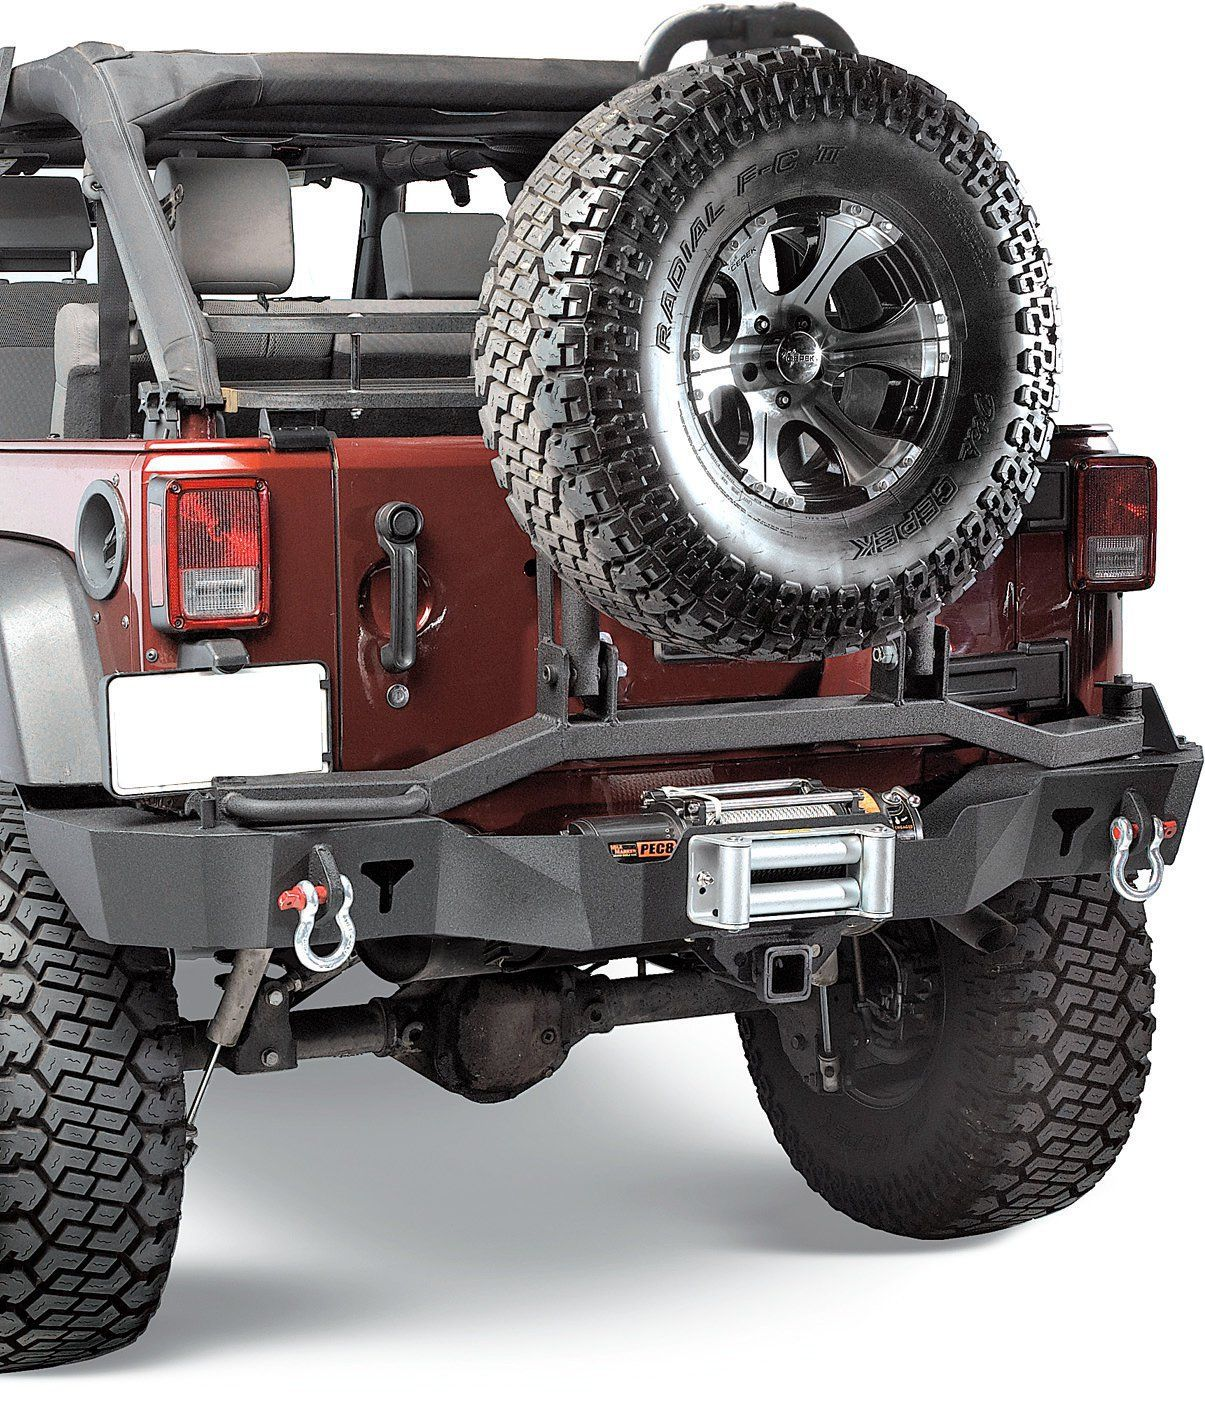 Best Jeep Wrangler Bumper With Winch Jeep wrangler